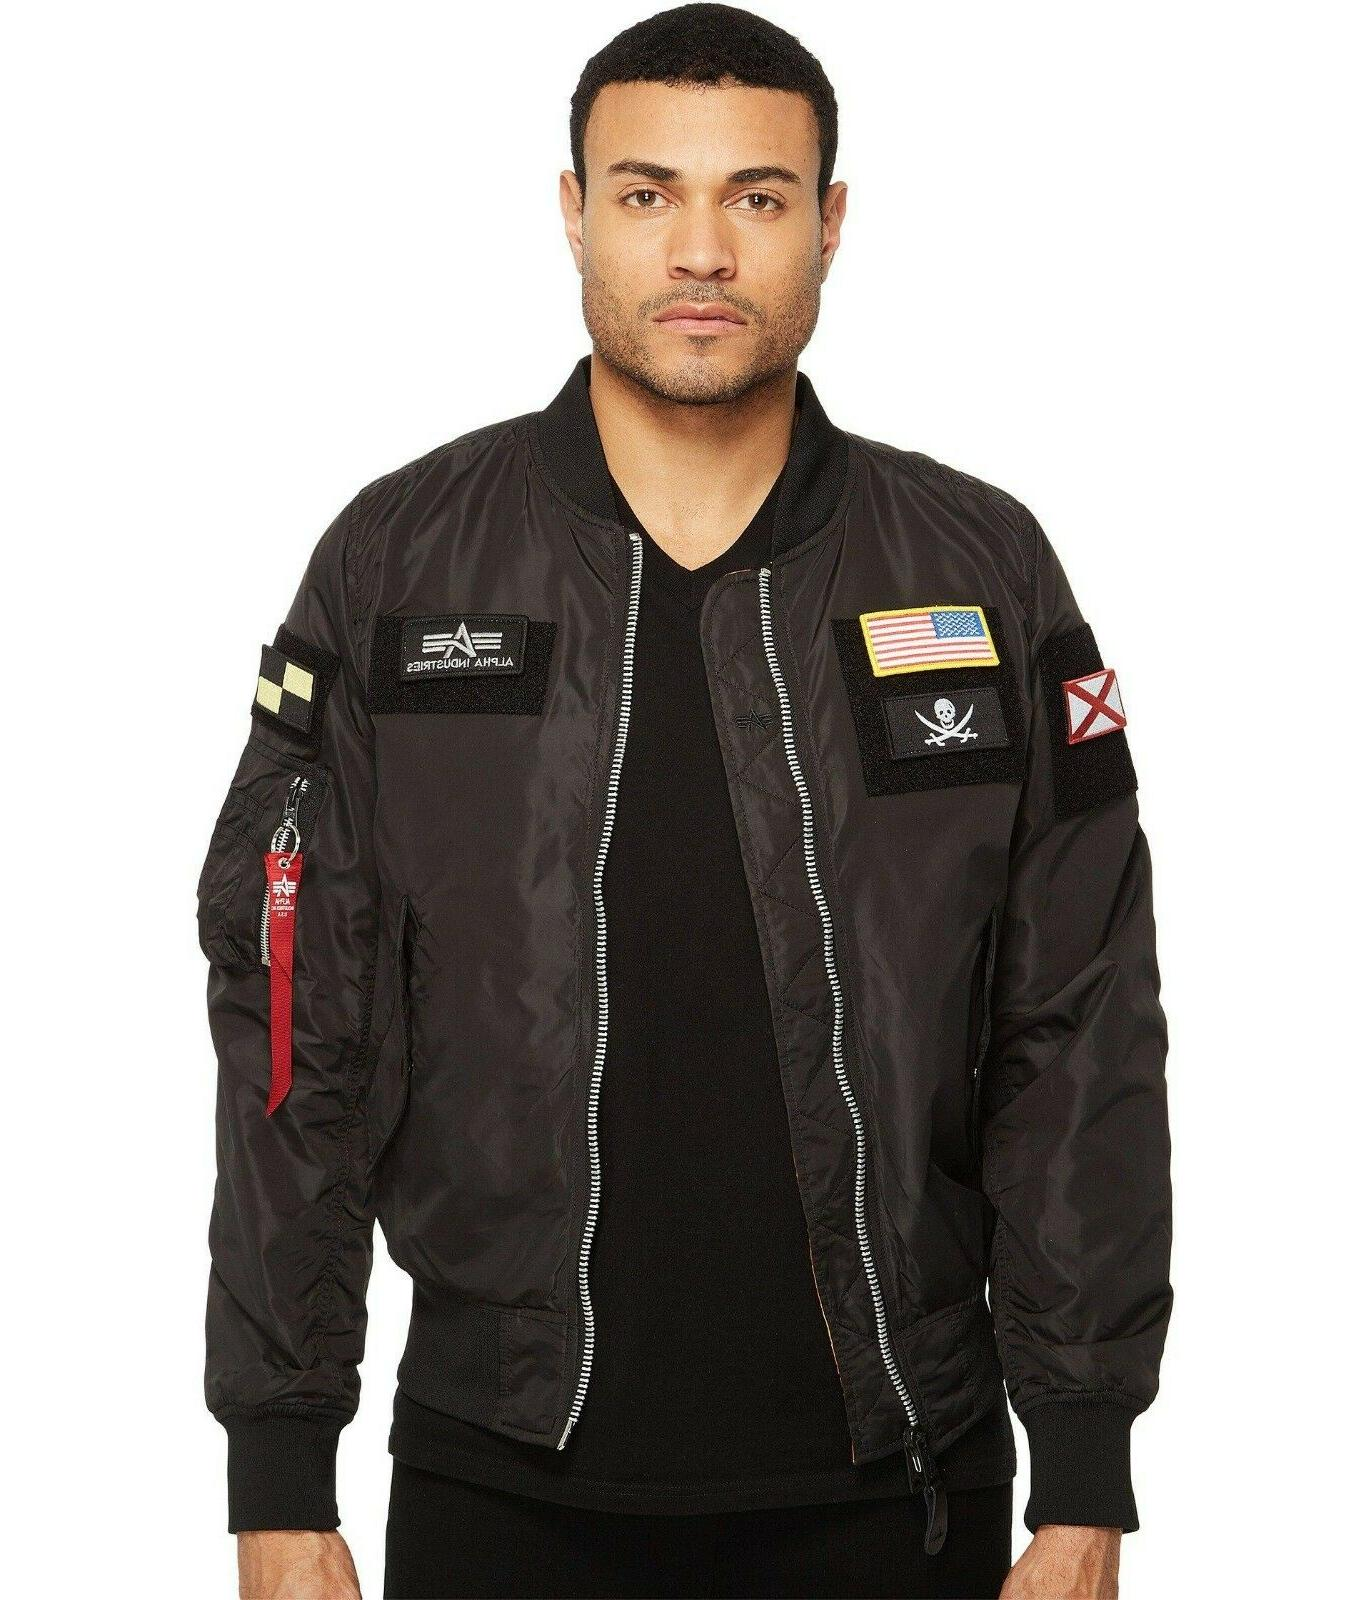 Alpha L-2B Flex Black Jacket with Patches Small